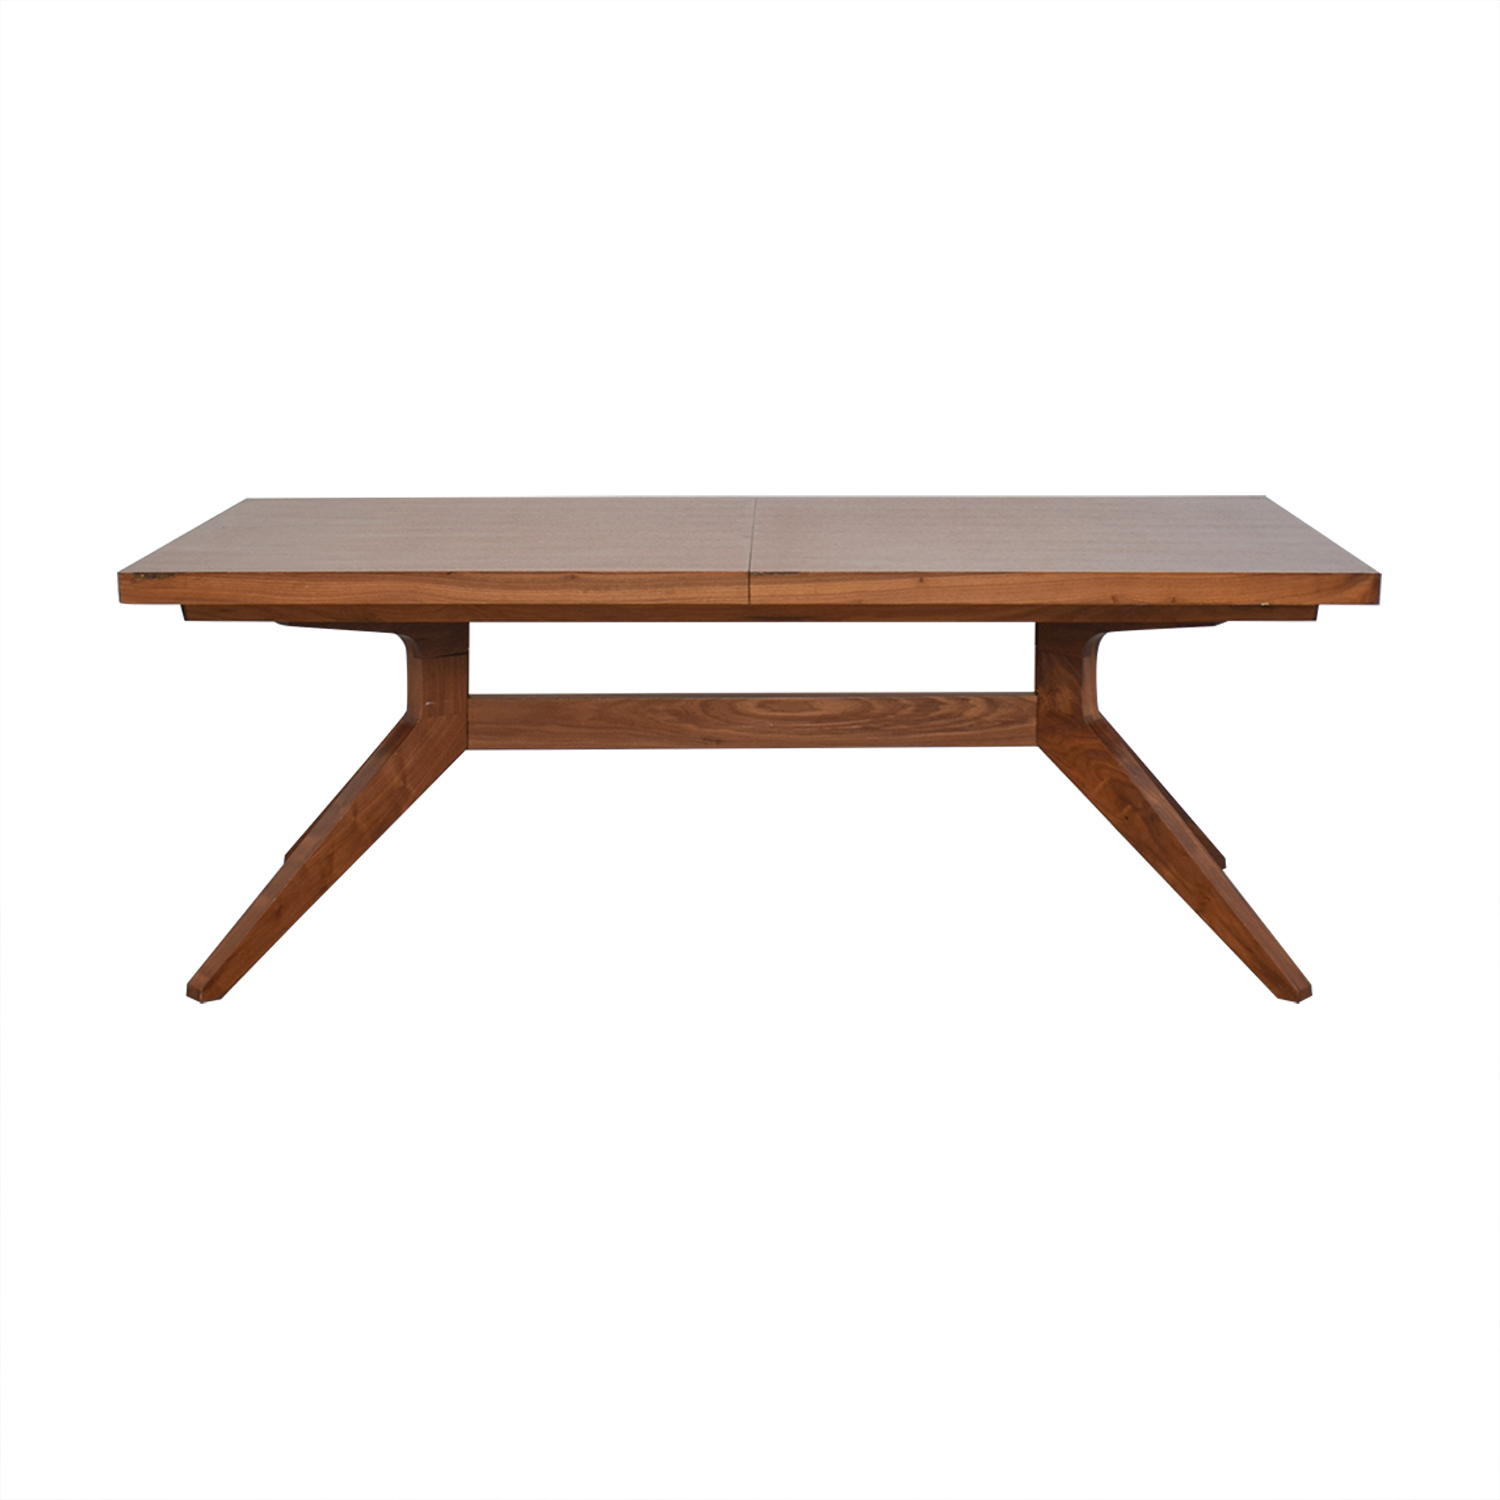 Case Matthew Hilton for Case Cross Extension Dining Table price